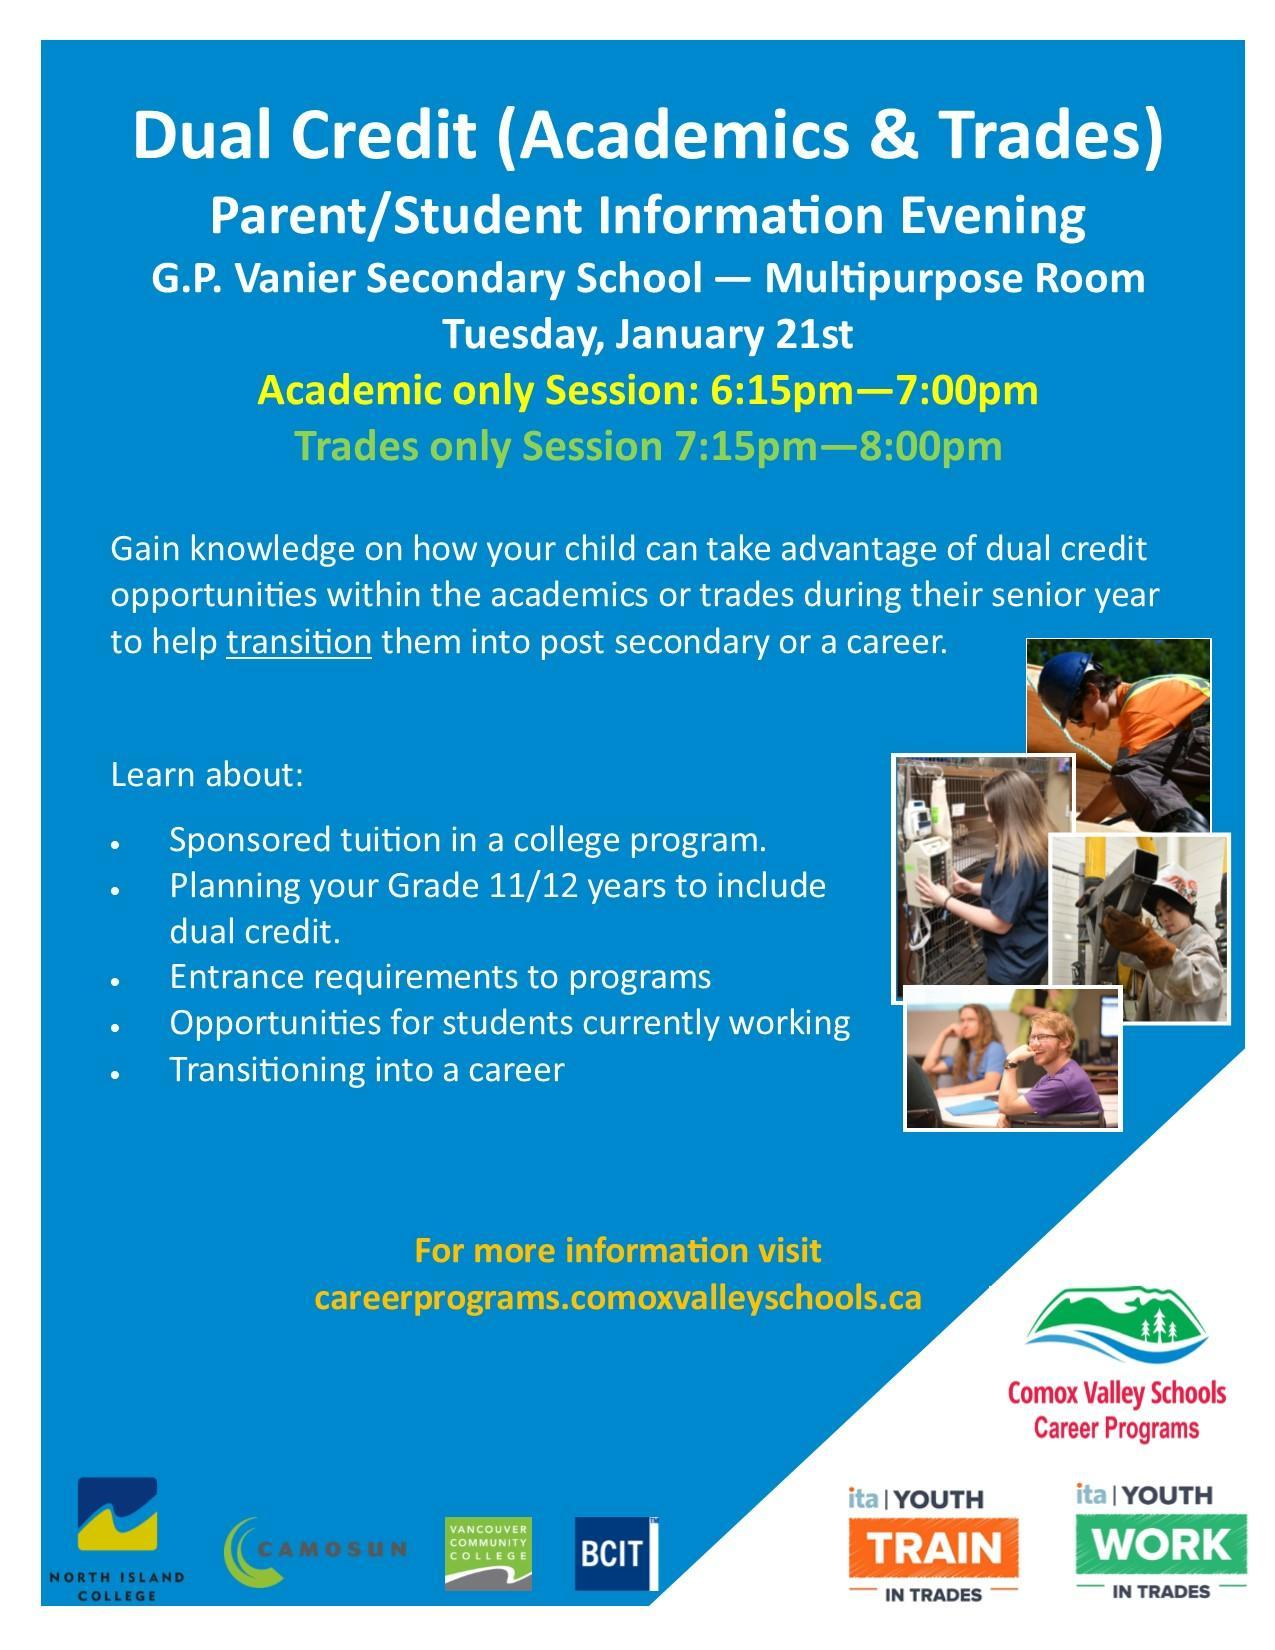 Dual Credit Parent Information Session - January 21st Image